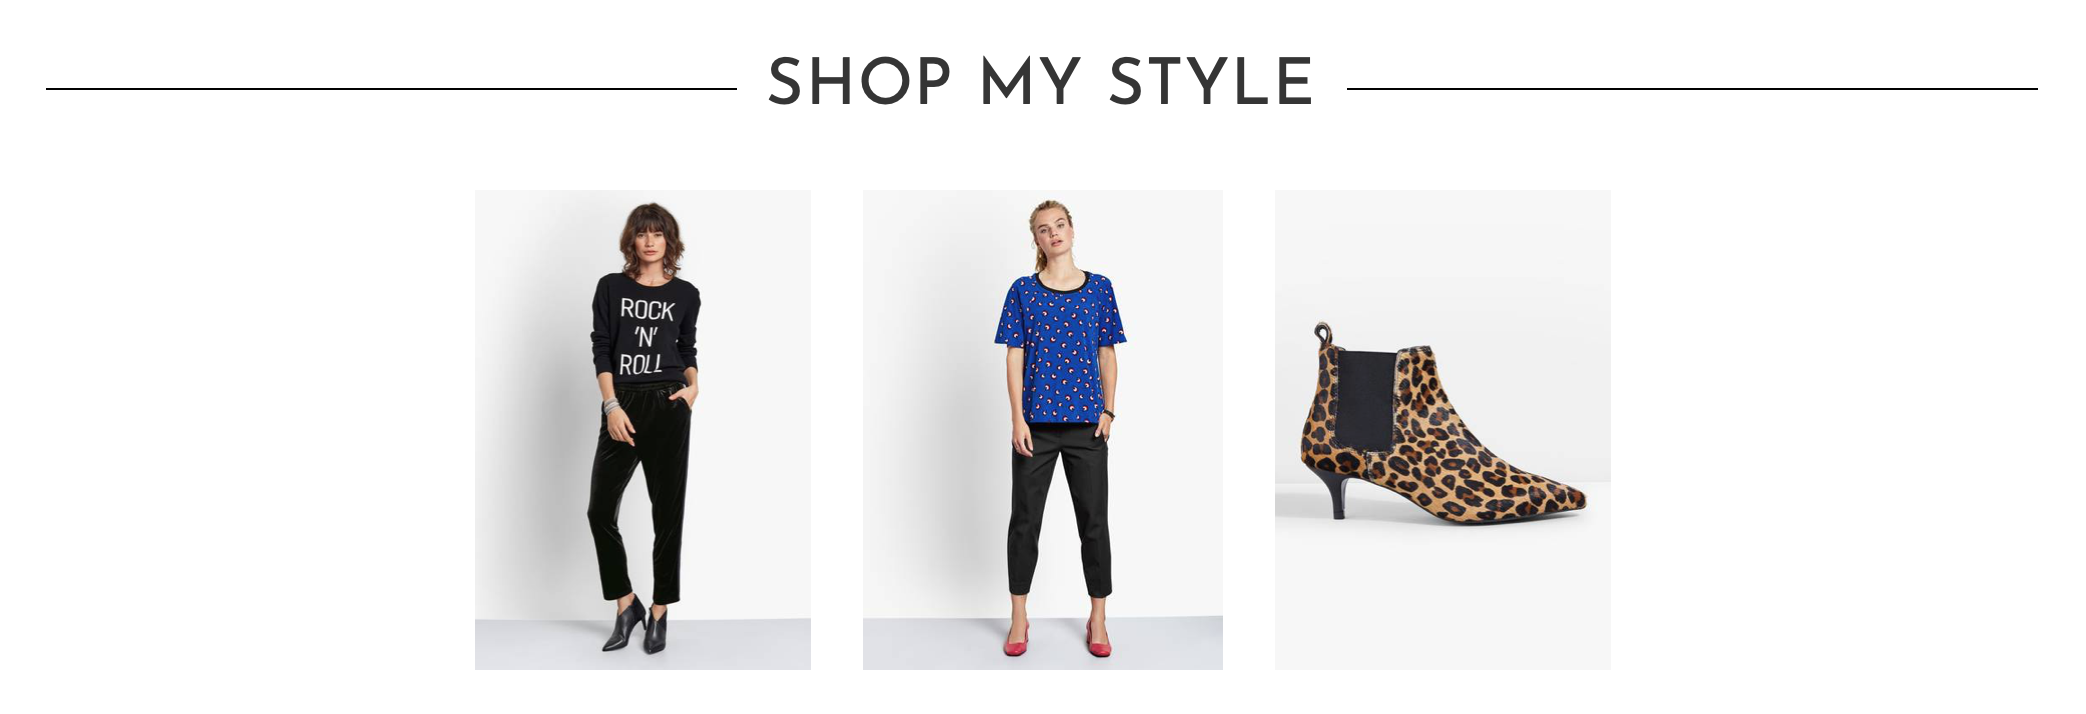 fc0bbe70d206 How to style & where to shop a slogan cashmere knit crew neck jumper,  cropped loose fit cigarette pants & leopard print kitten heel ankle boots  #ootd #wiw ...